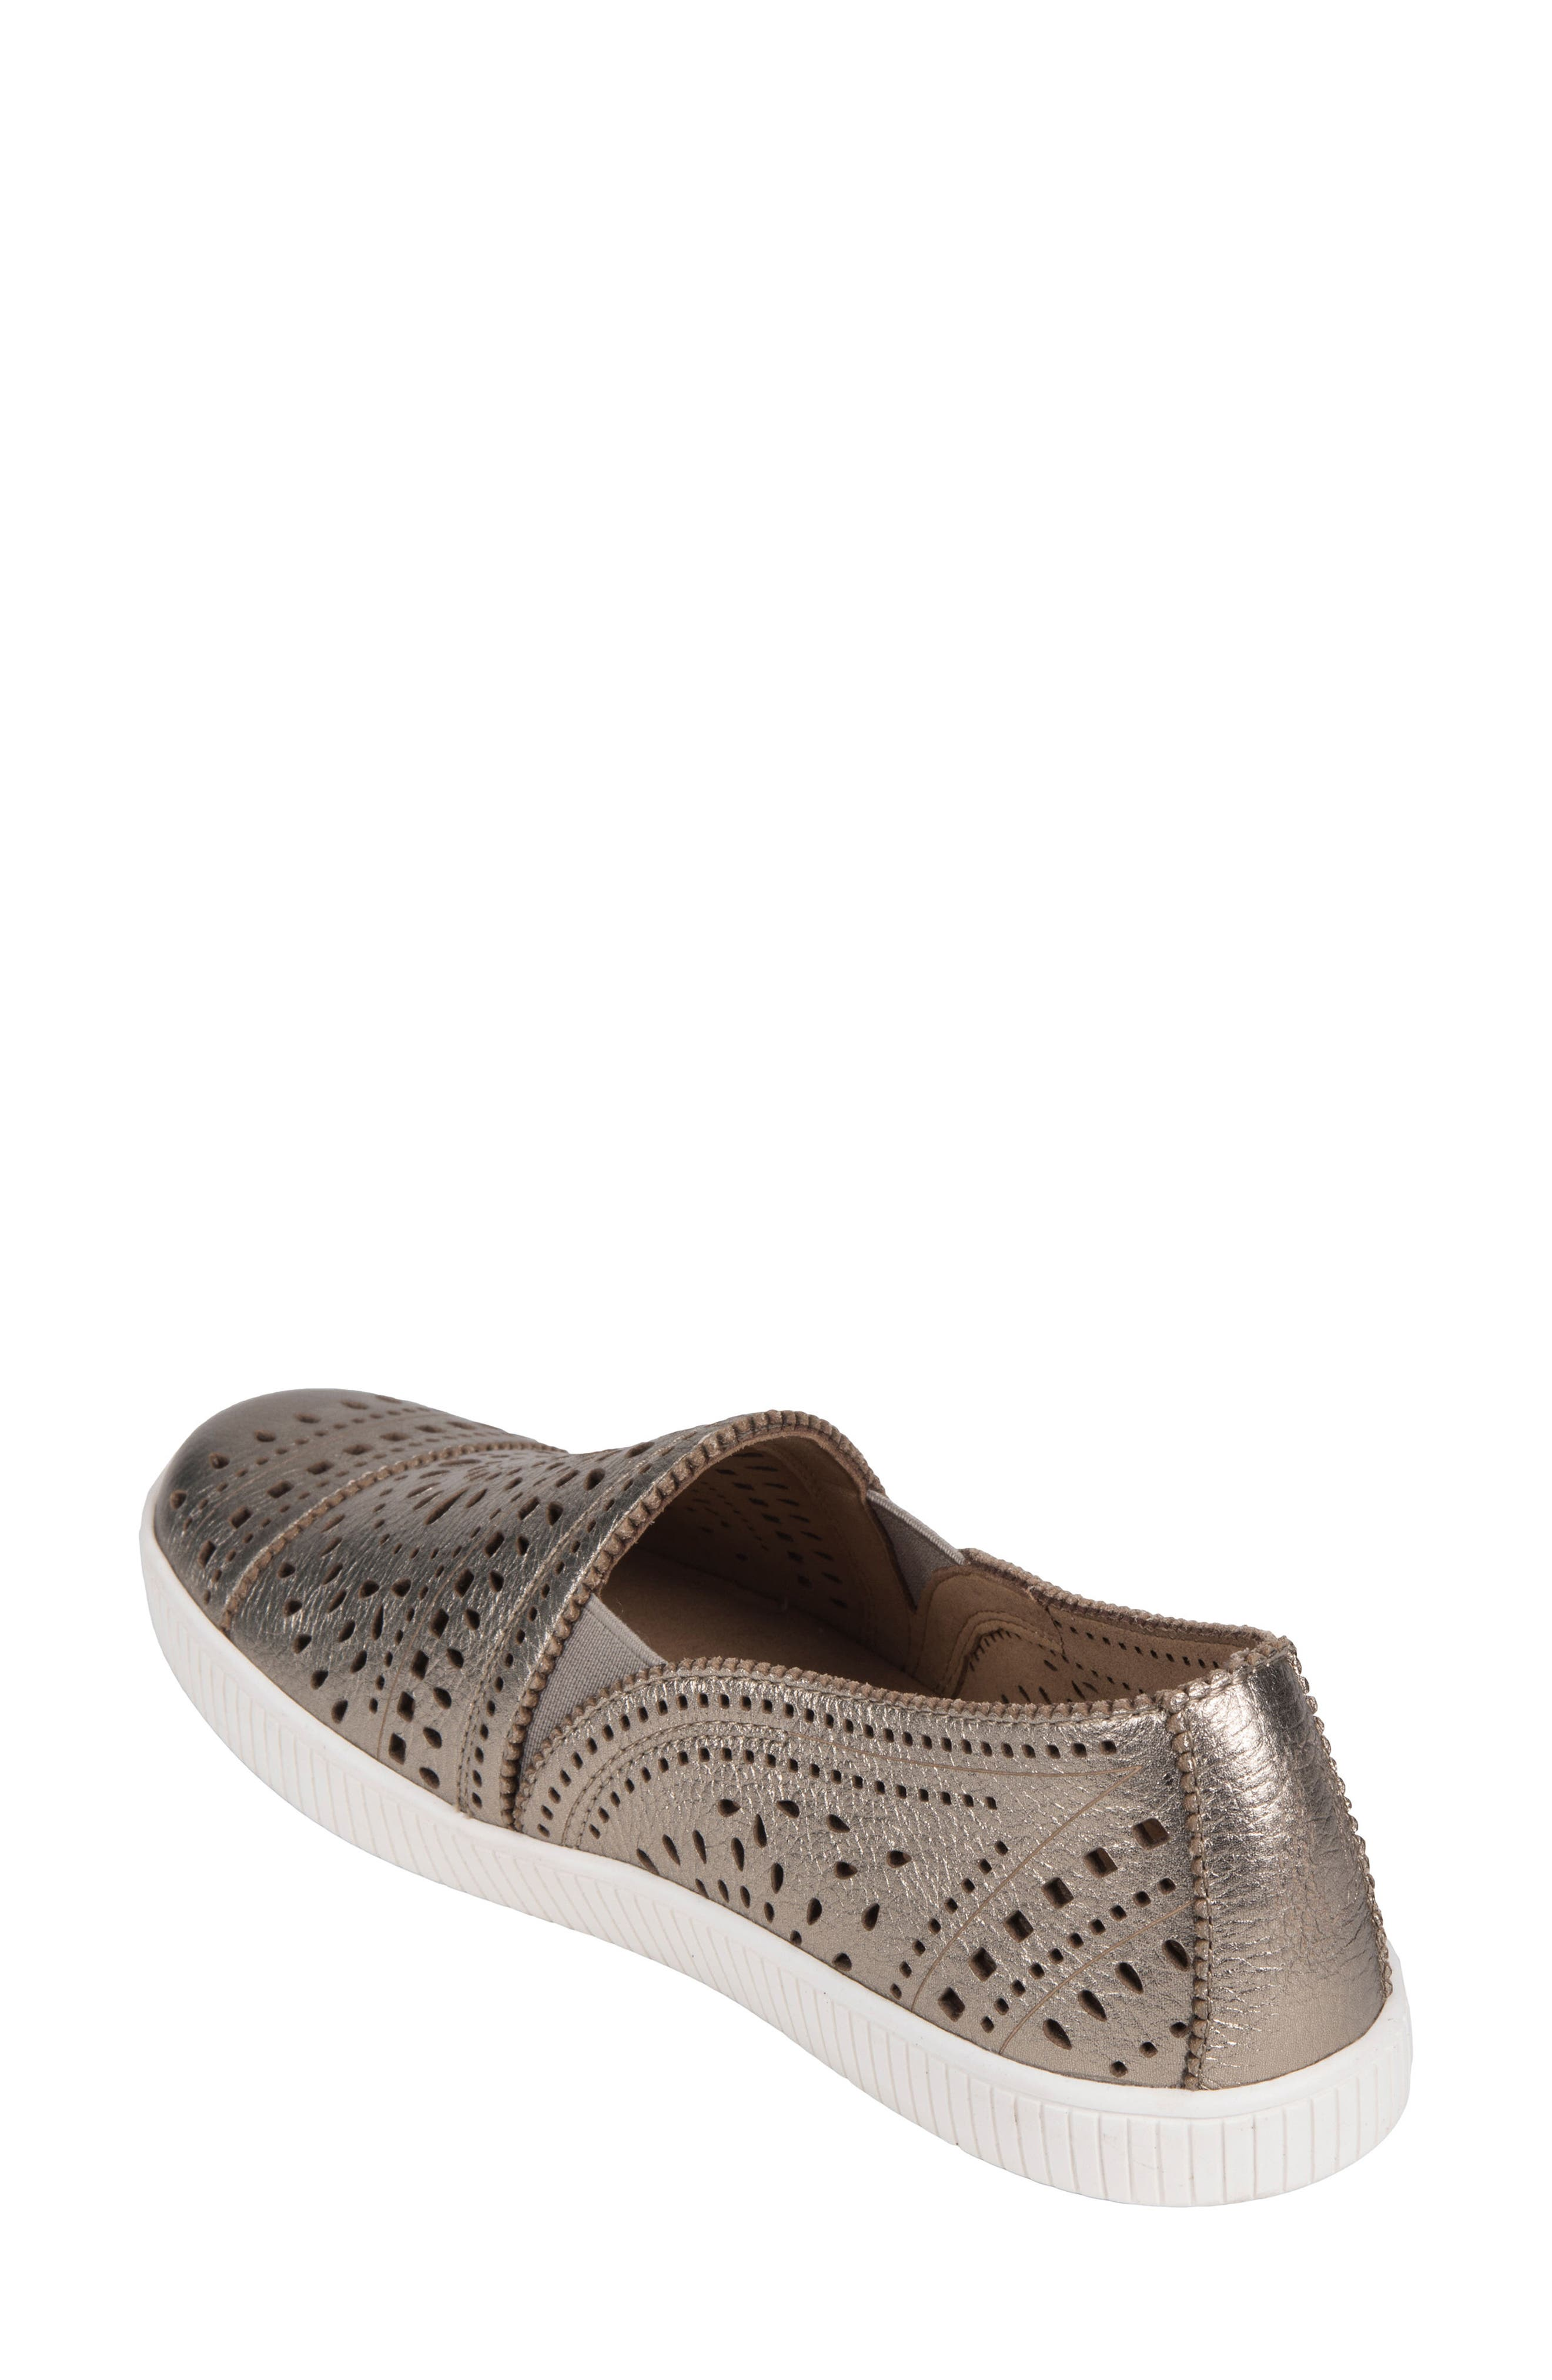 Tayberry Perforated Slip-On Sneaker,                             Alternate thumbnail 8, color,